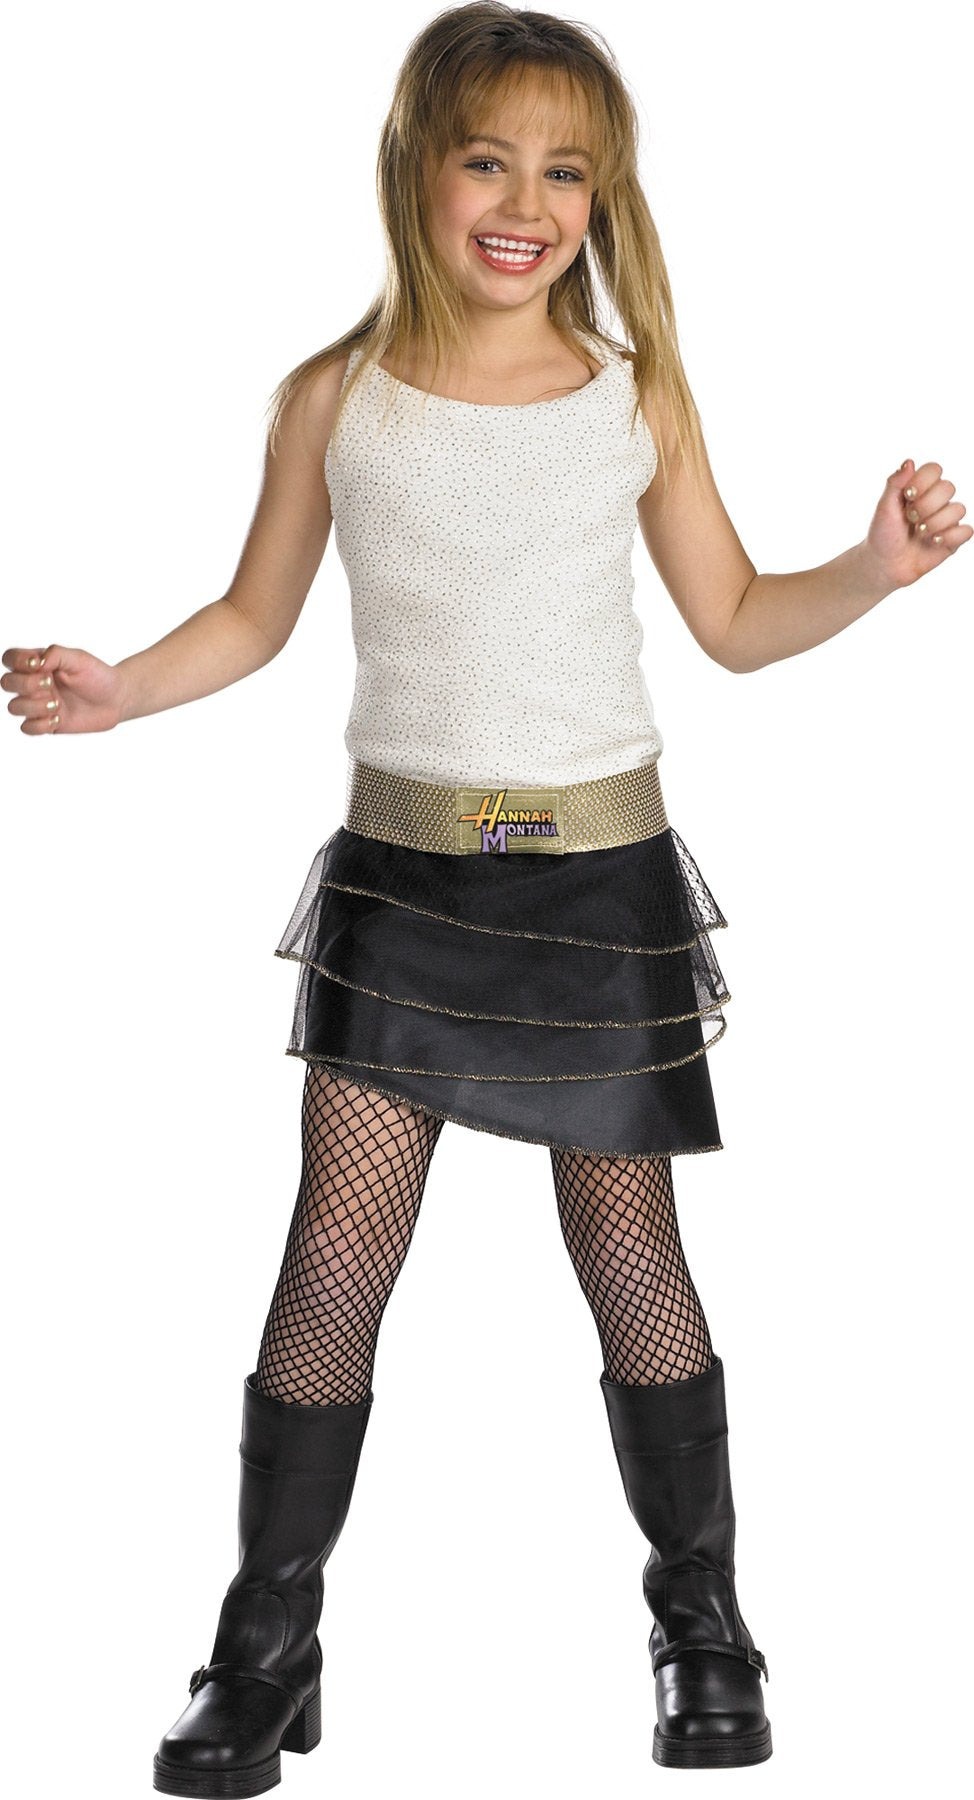 Disney Hannah Montana Quality Costume 7-8 - Baby World Inc